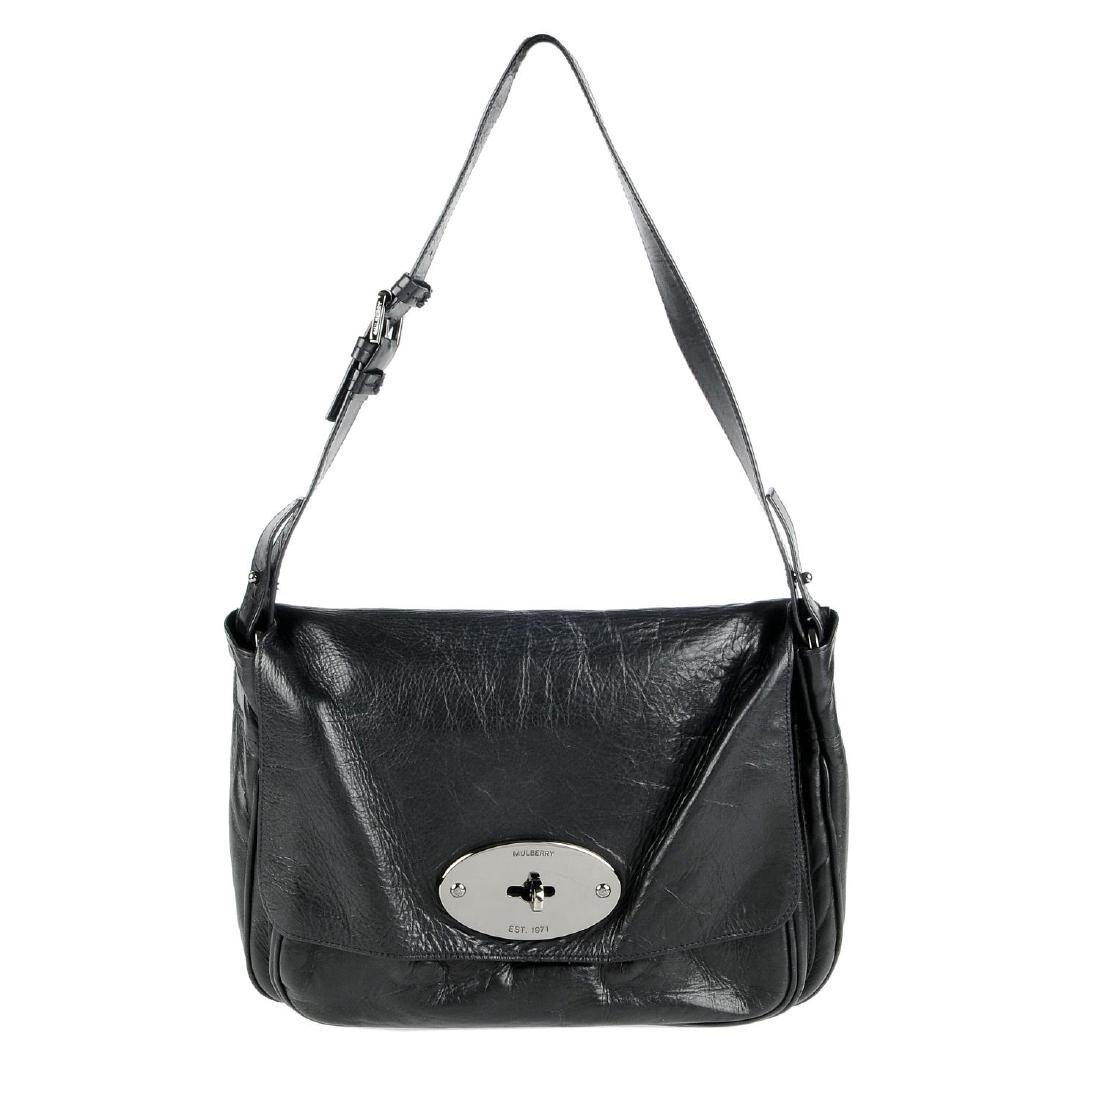 MULBERRY - an oversized Bayswater clutch. Designed with